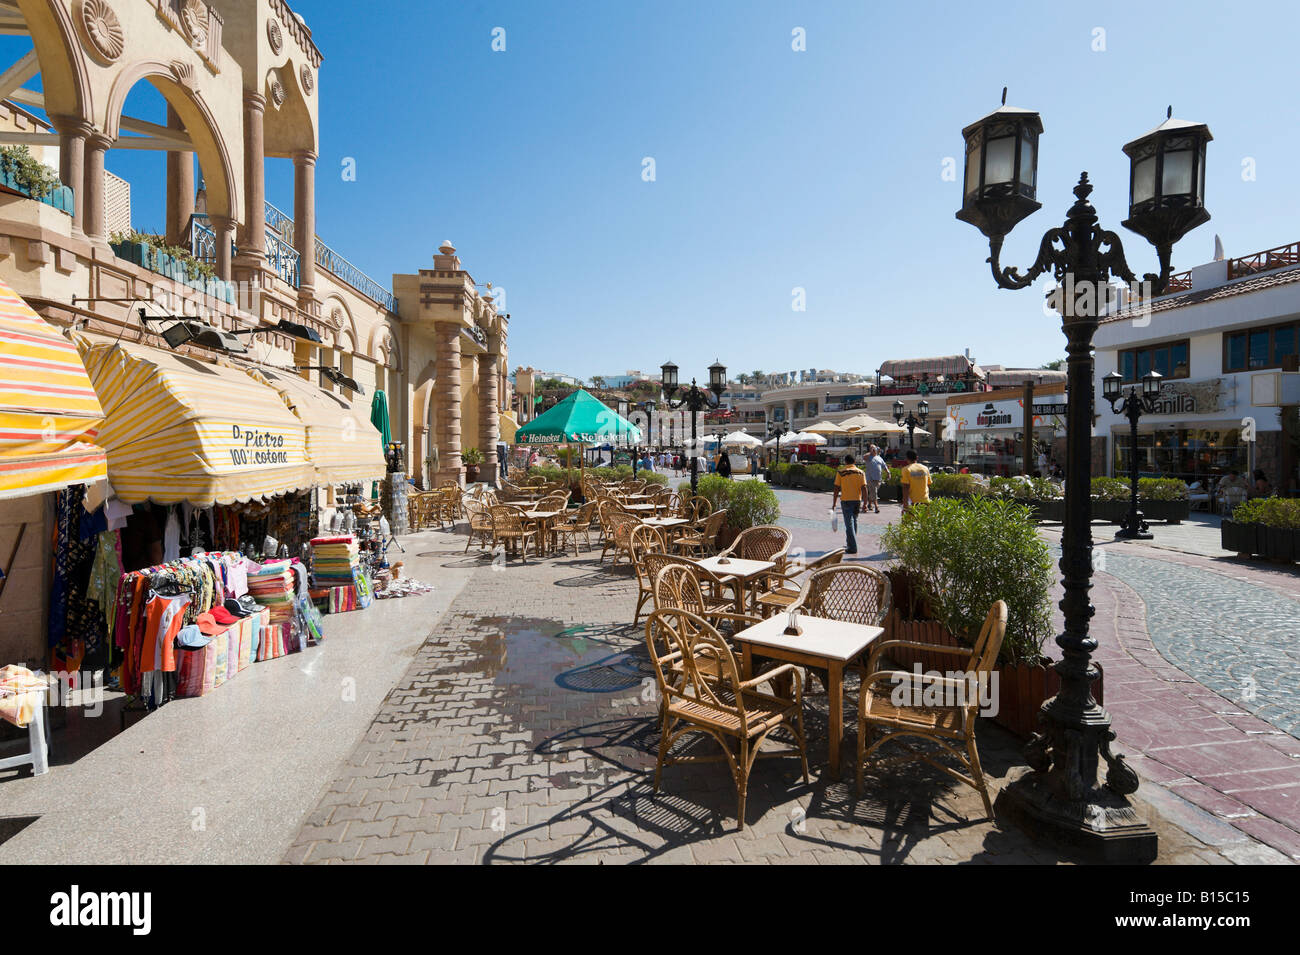 Shops & restaurant on 'King of Bahrein Street', Shopping District, Naama Bay, Sharm el-Sheikh, Red Sea - Stock Image